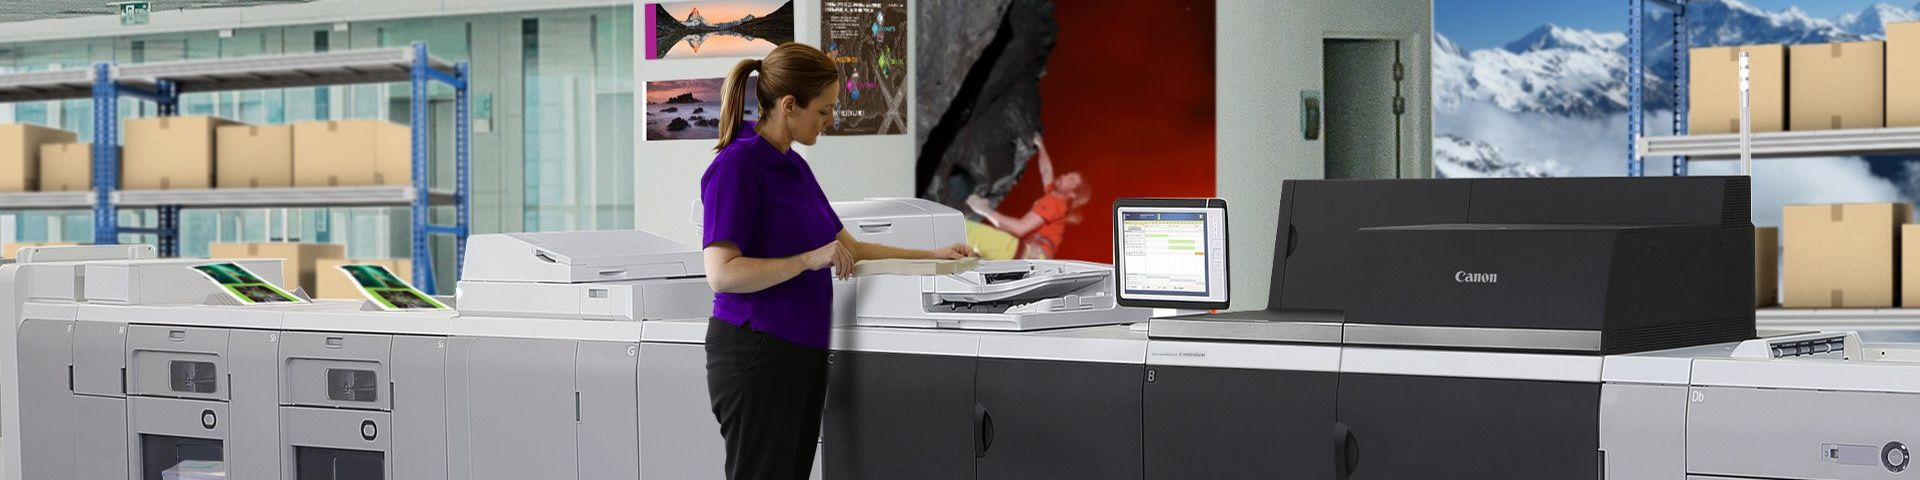 A woman in a purple top is operating a long black and grey Canon professional grade printer. Behind the machine are racks with cardboard boxes on them.